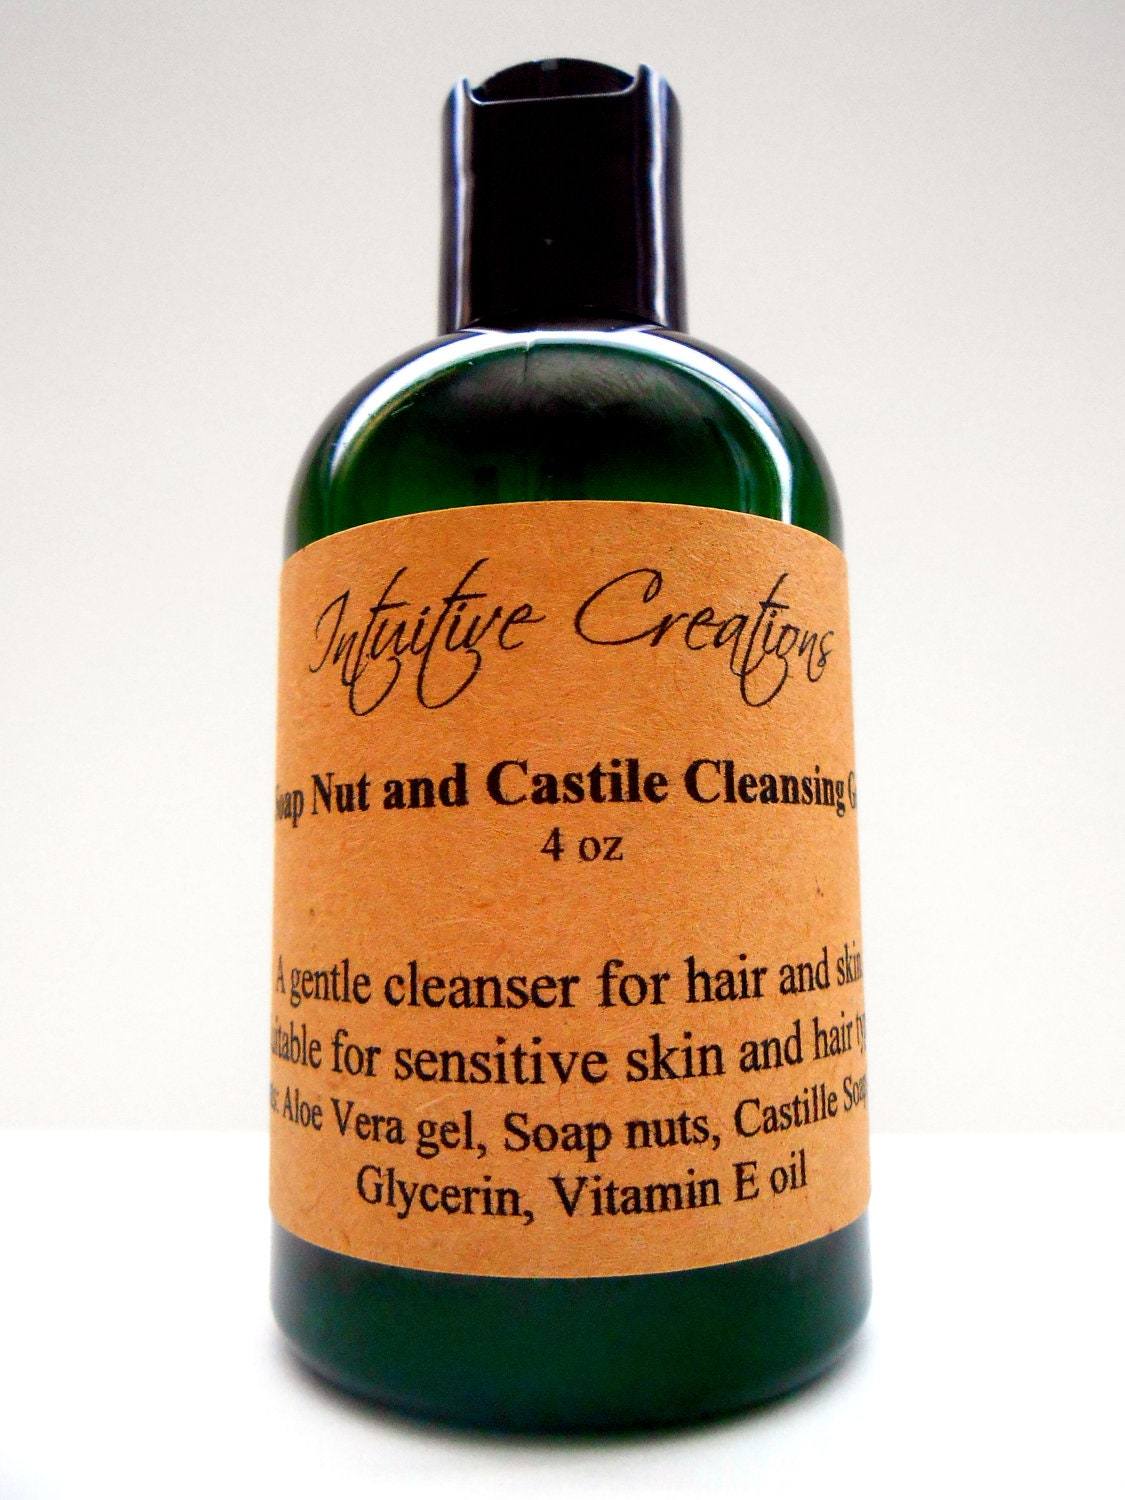 Soap Nut and Castile Cleansing Gel